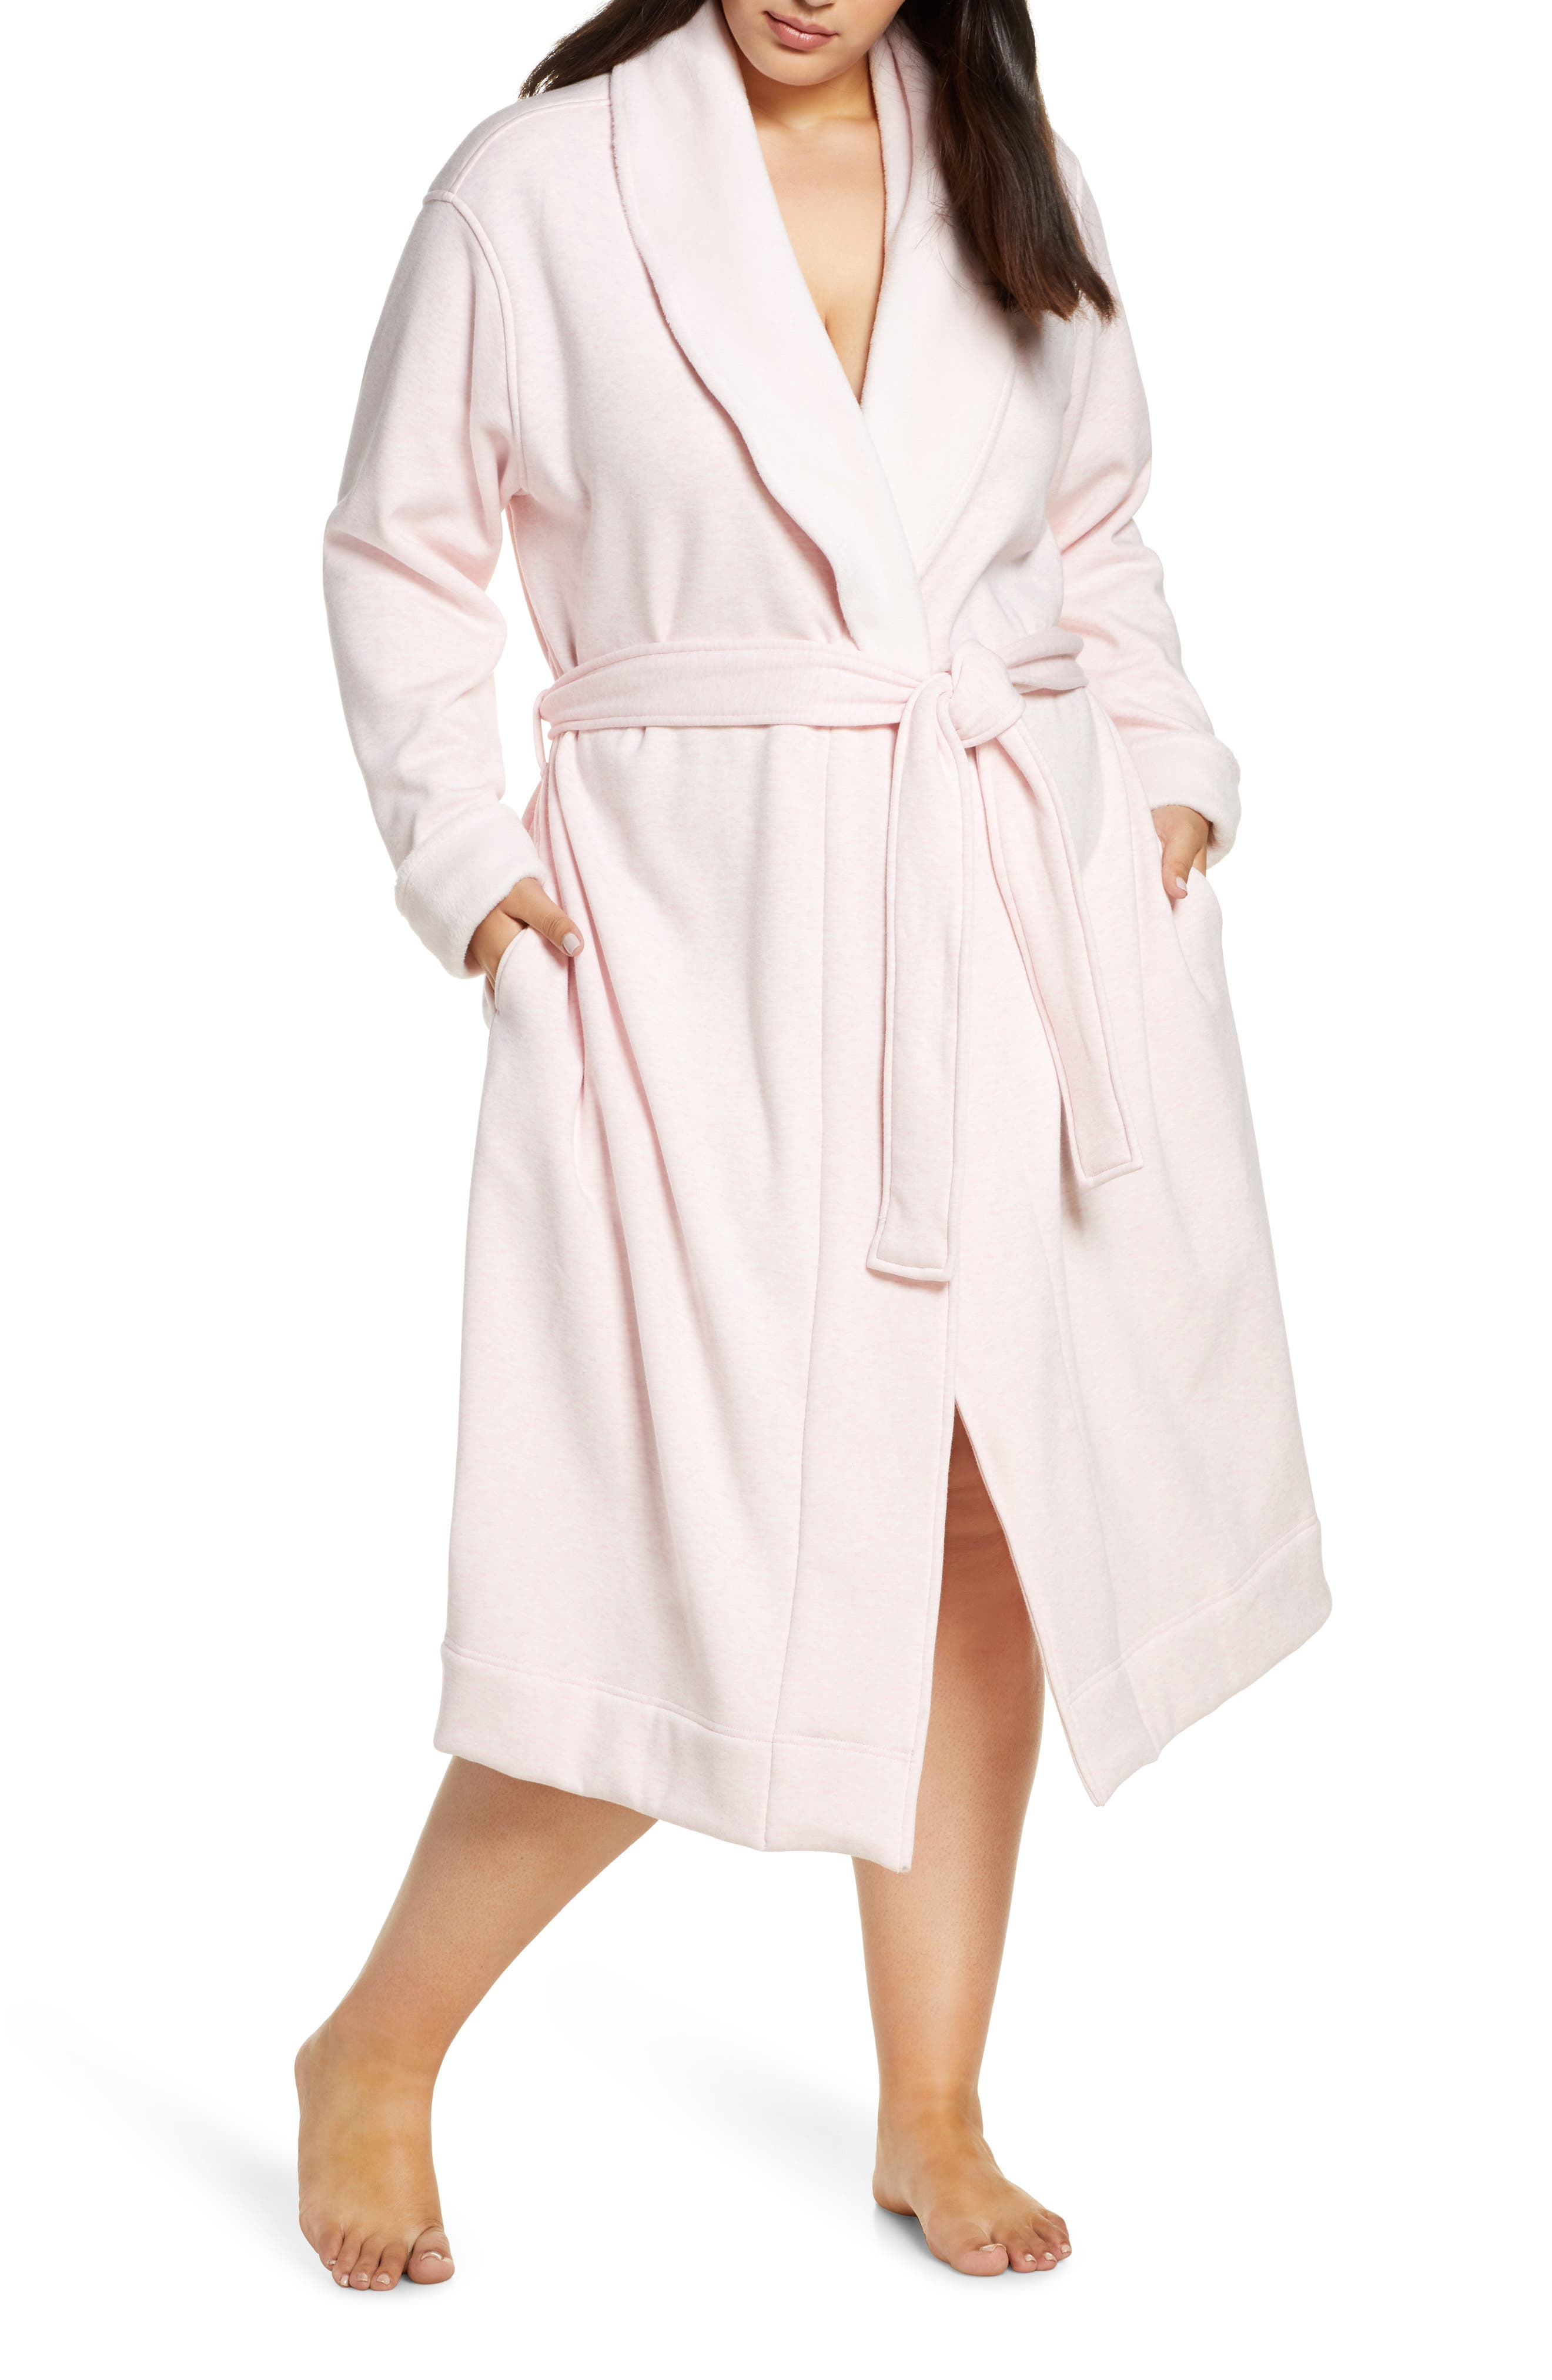 Ugg DUFFIELD BELTED ROBE